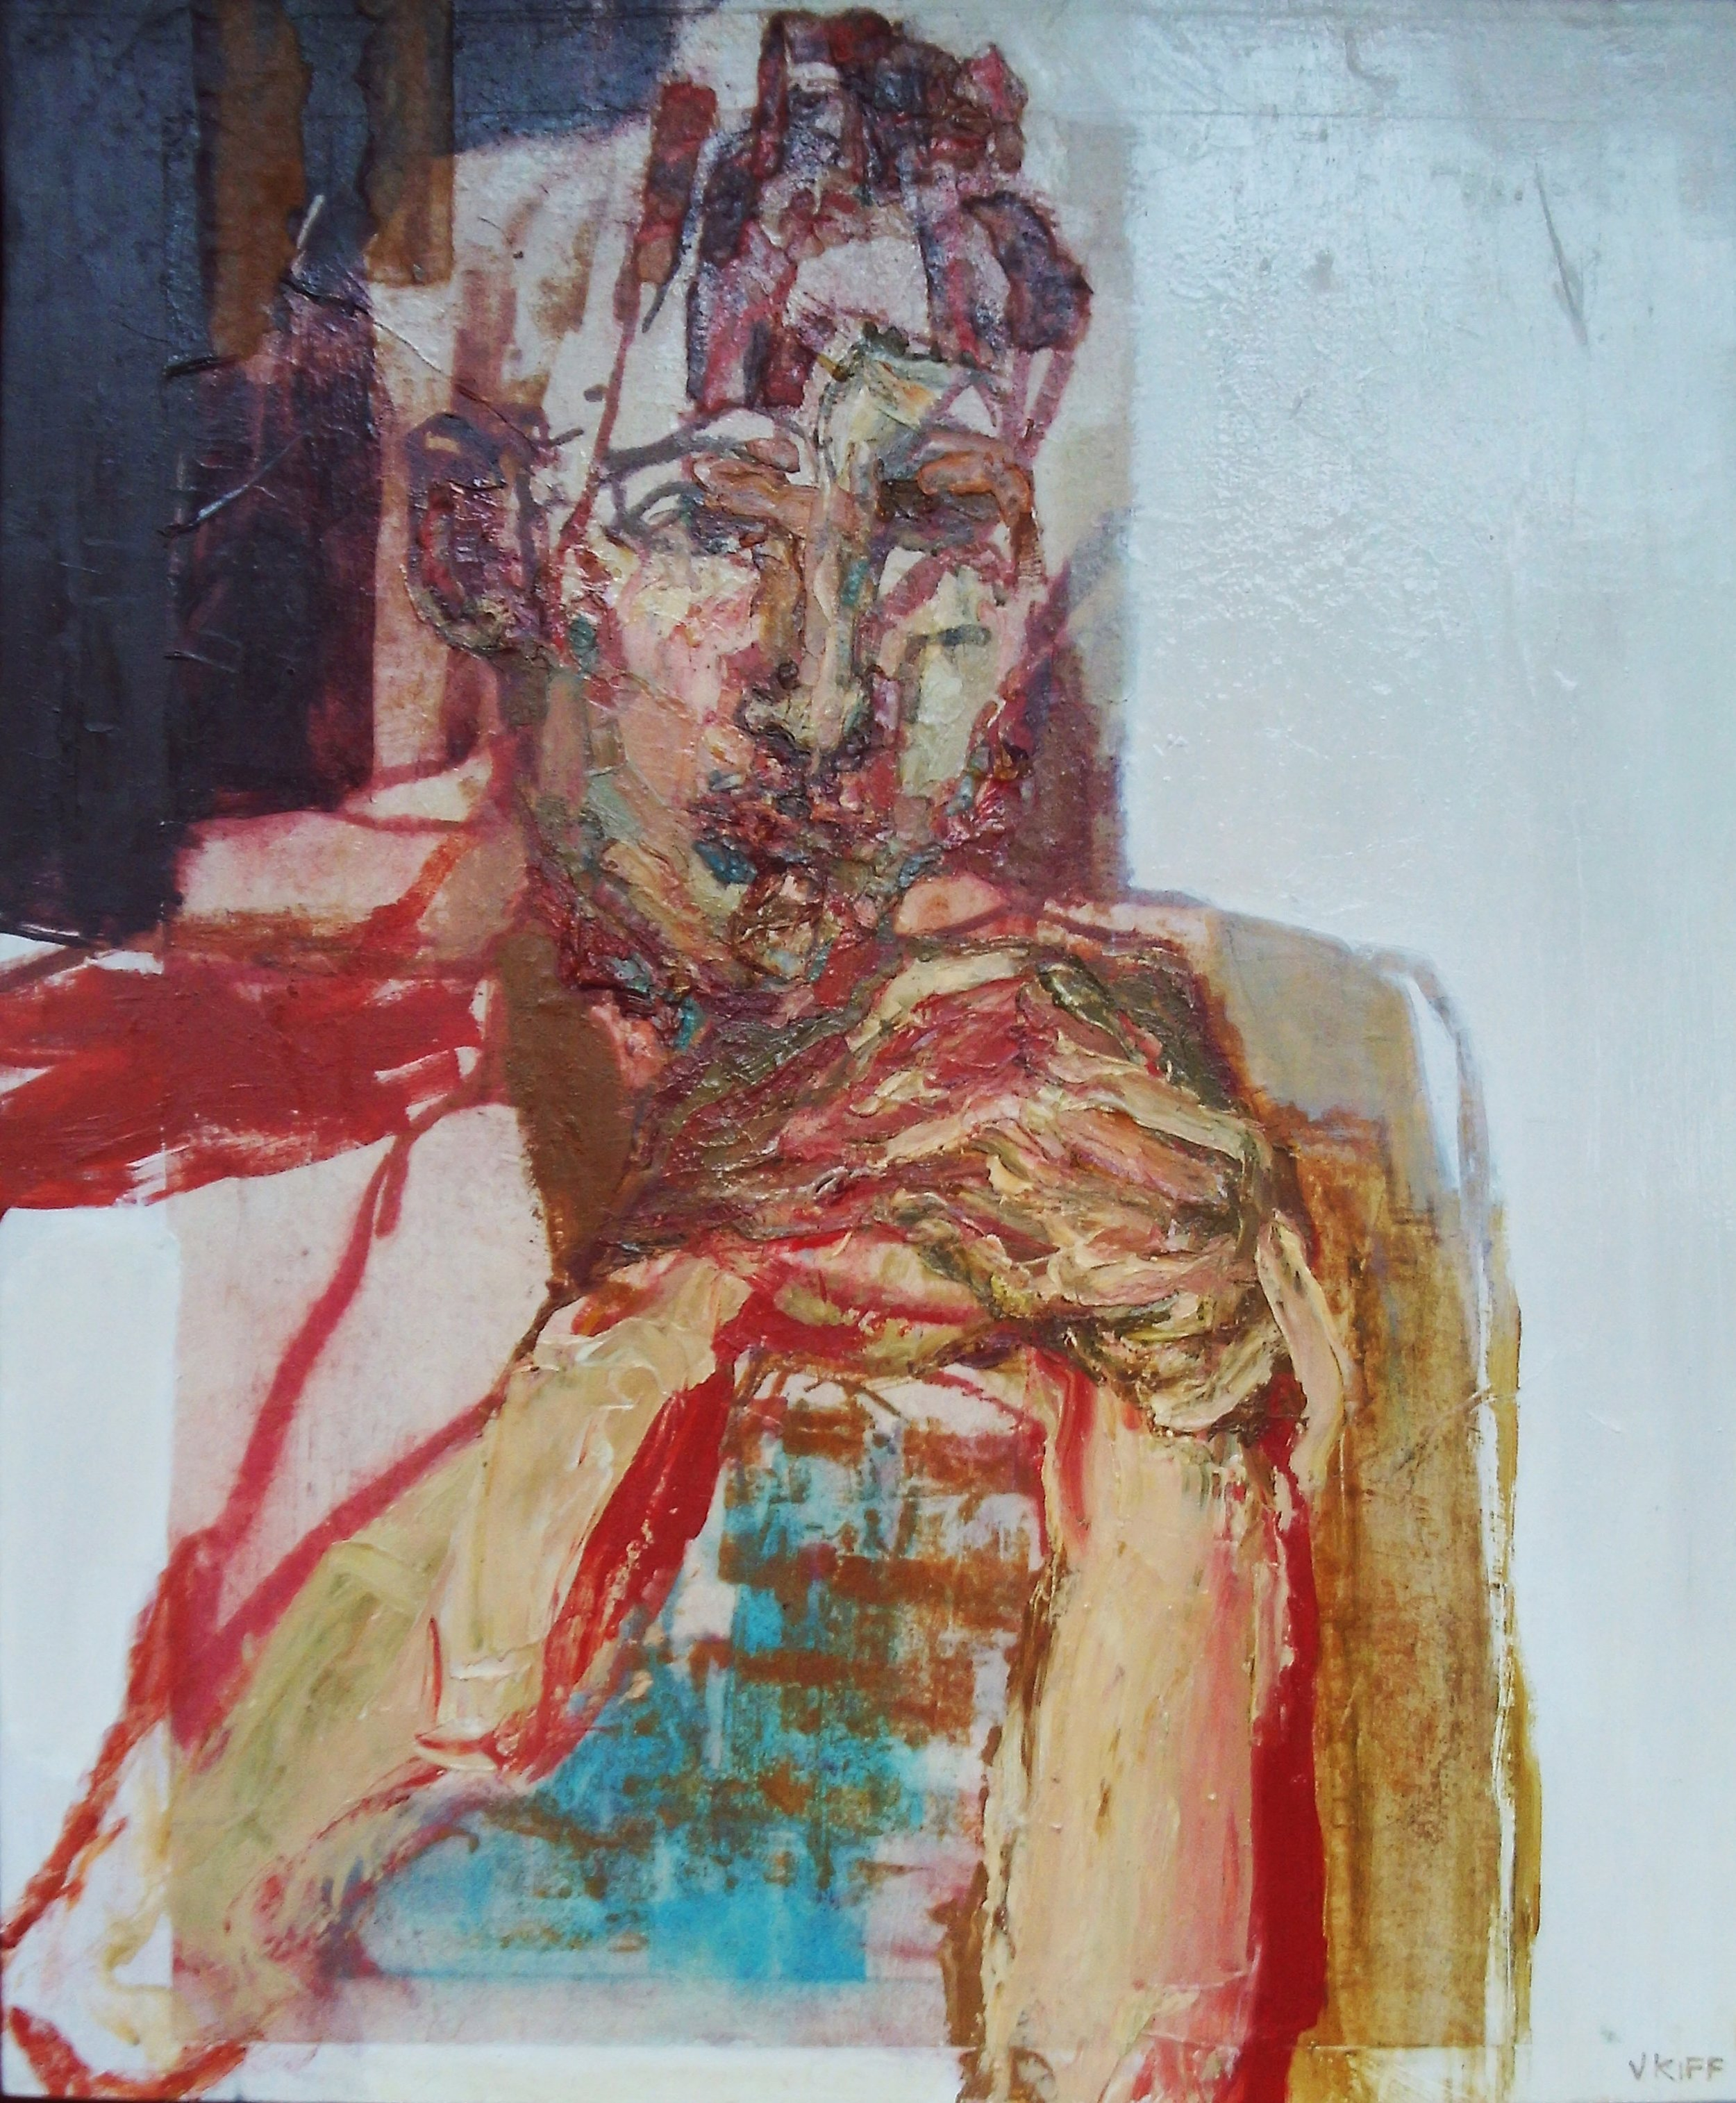 Artist: Victoria Kiff  Title: The Flesh Andira  Size: 75 x 55 cm  Medium: Oil on wood panel  Price £1900   Buy Now